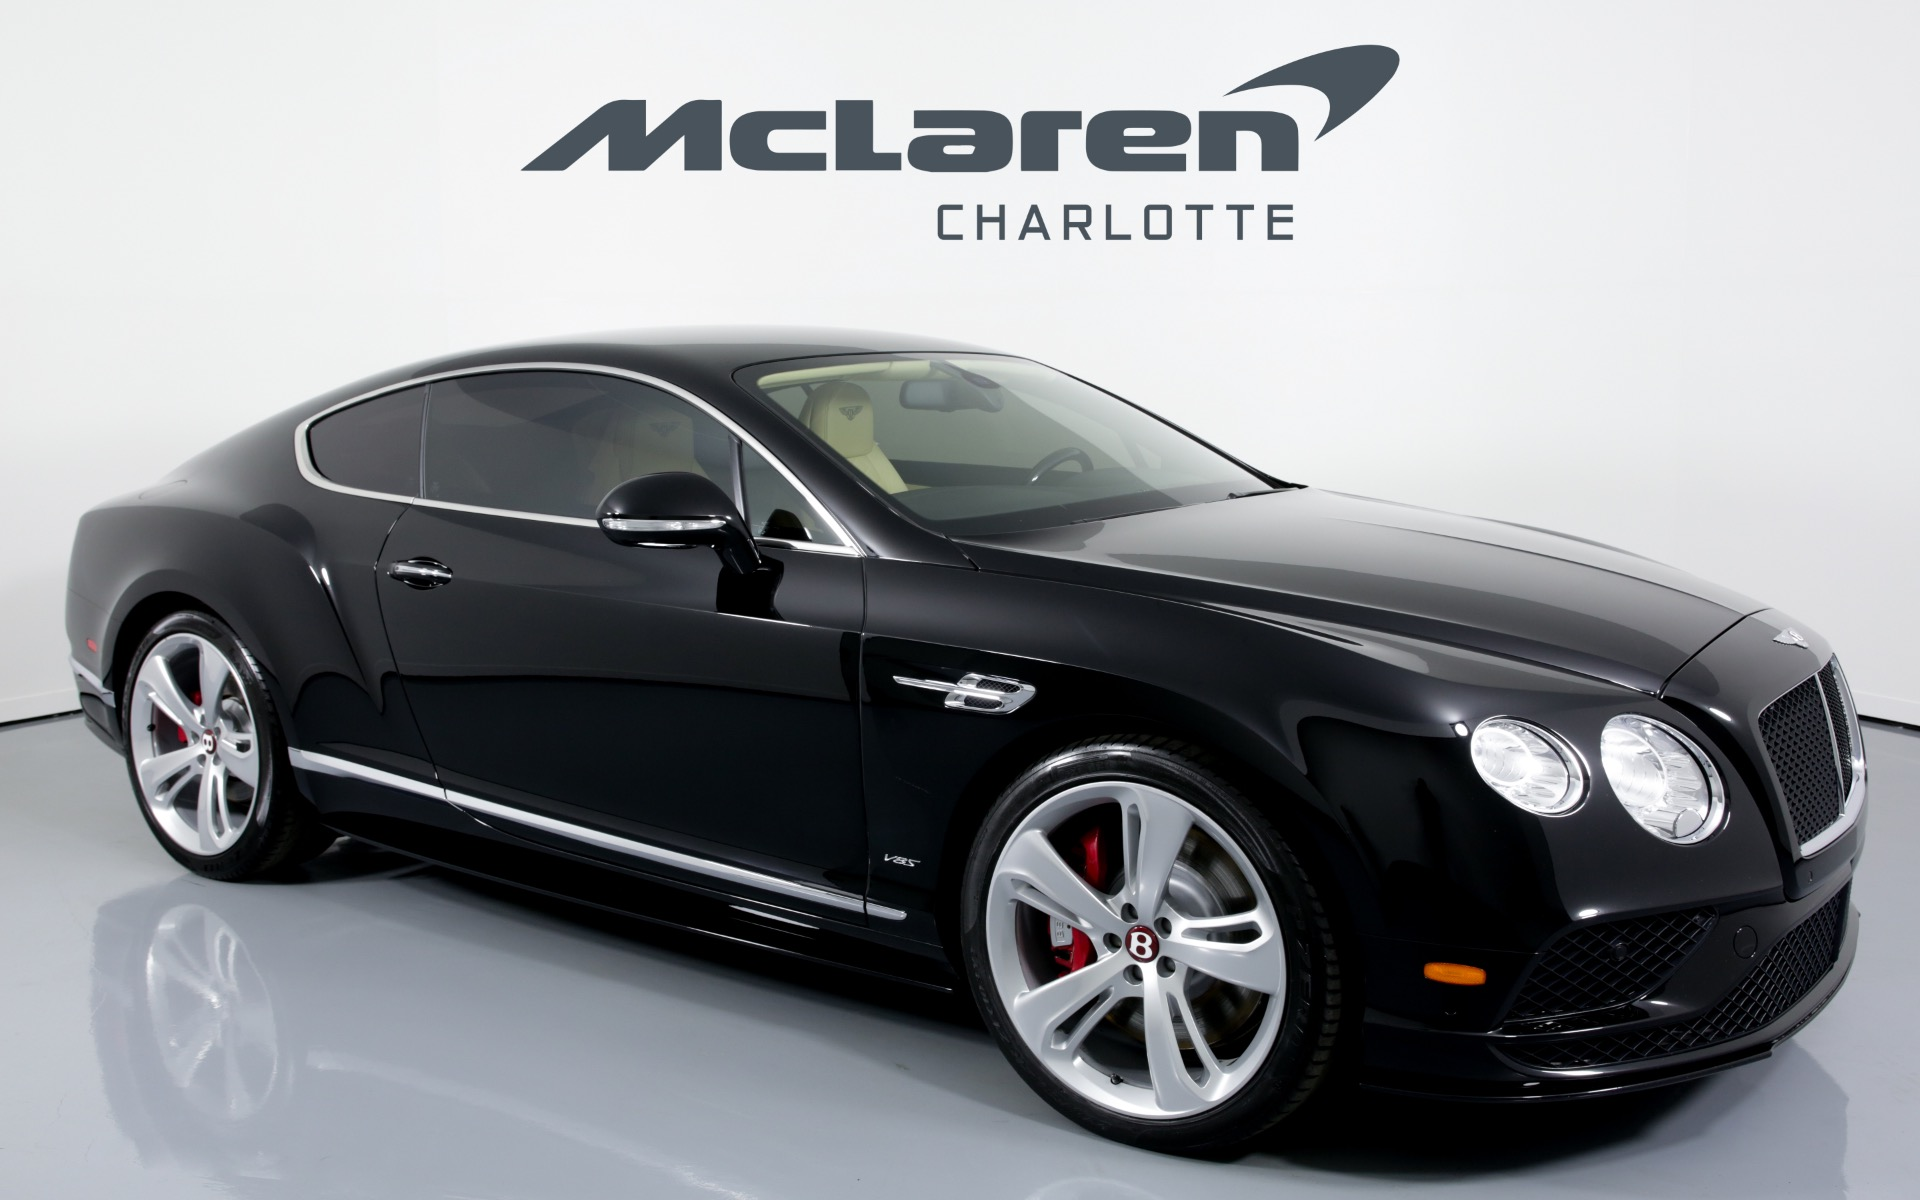 Used 2016 Bentley Continental Gt V8 S Charlotte Nc